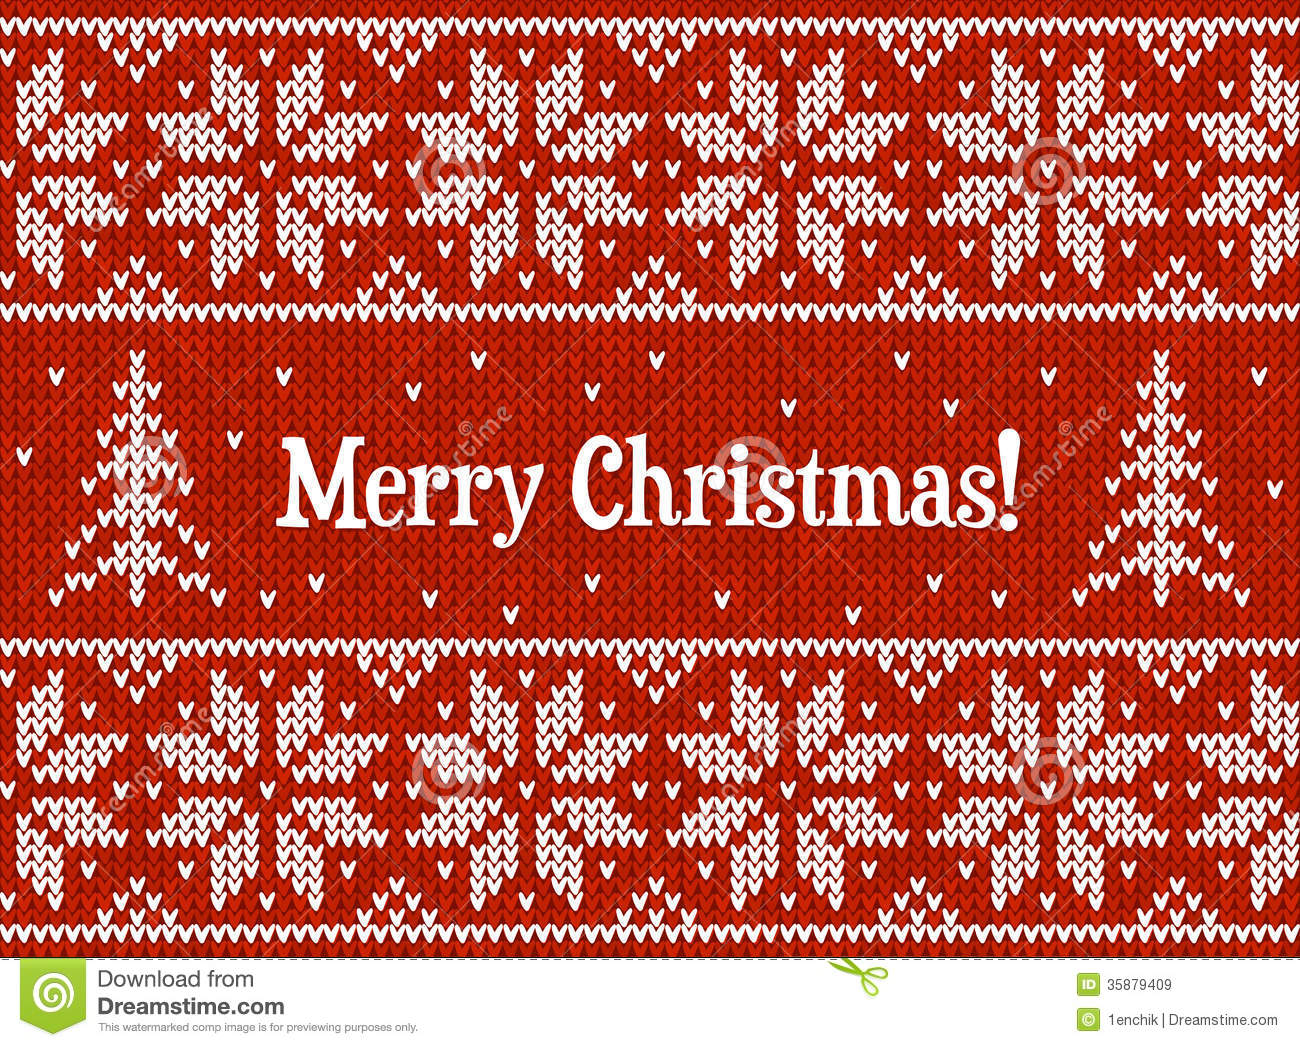 Knitting Patterns For Christmas Cards : Red And White Christmas Knit Greeting Card Royalty Free Stock Images - Image:...